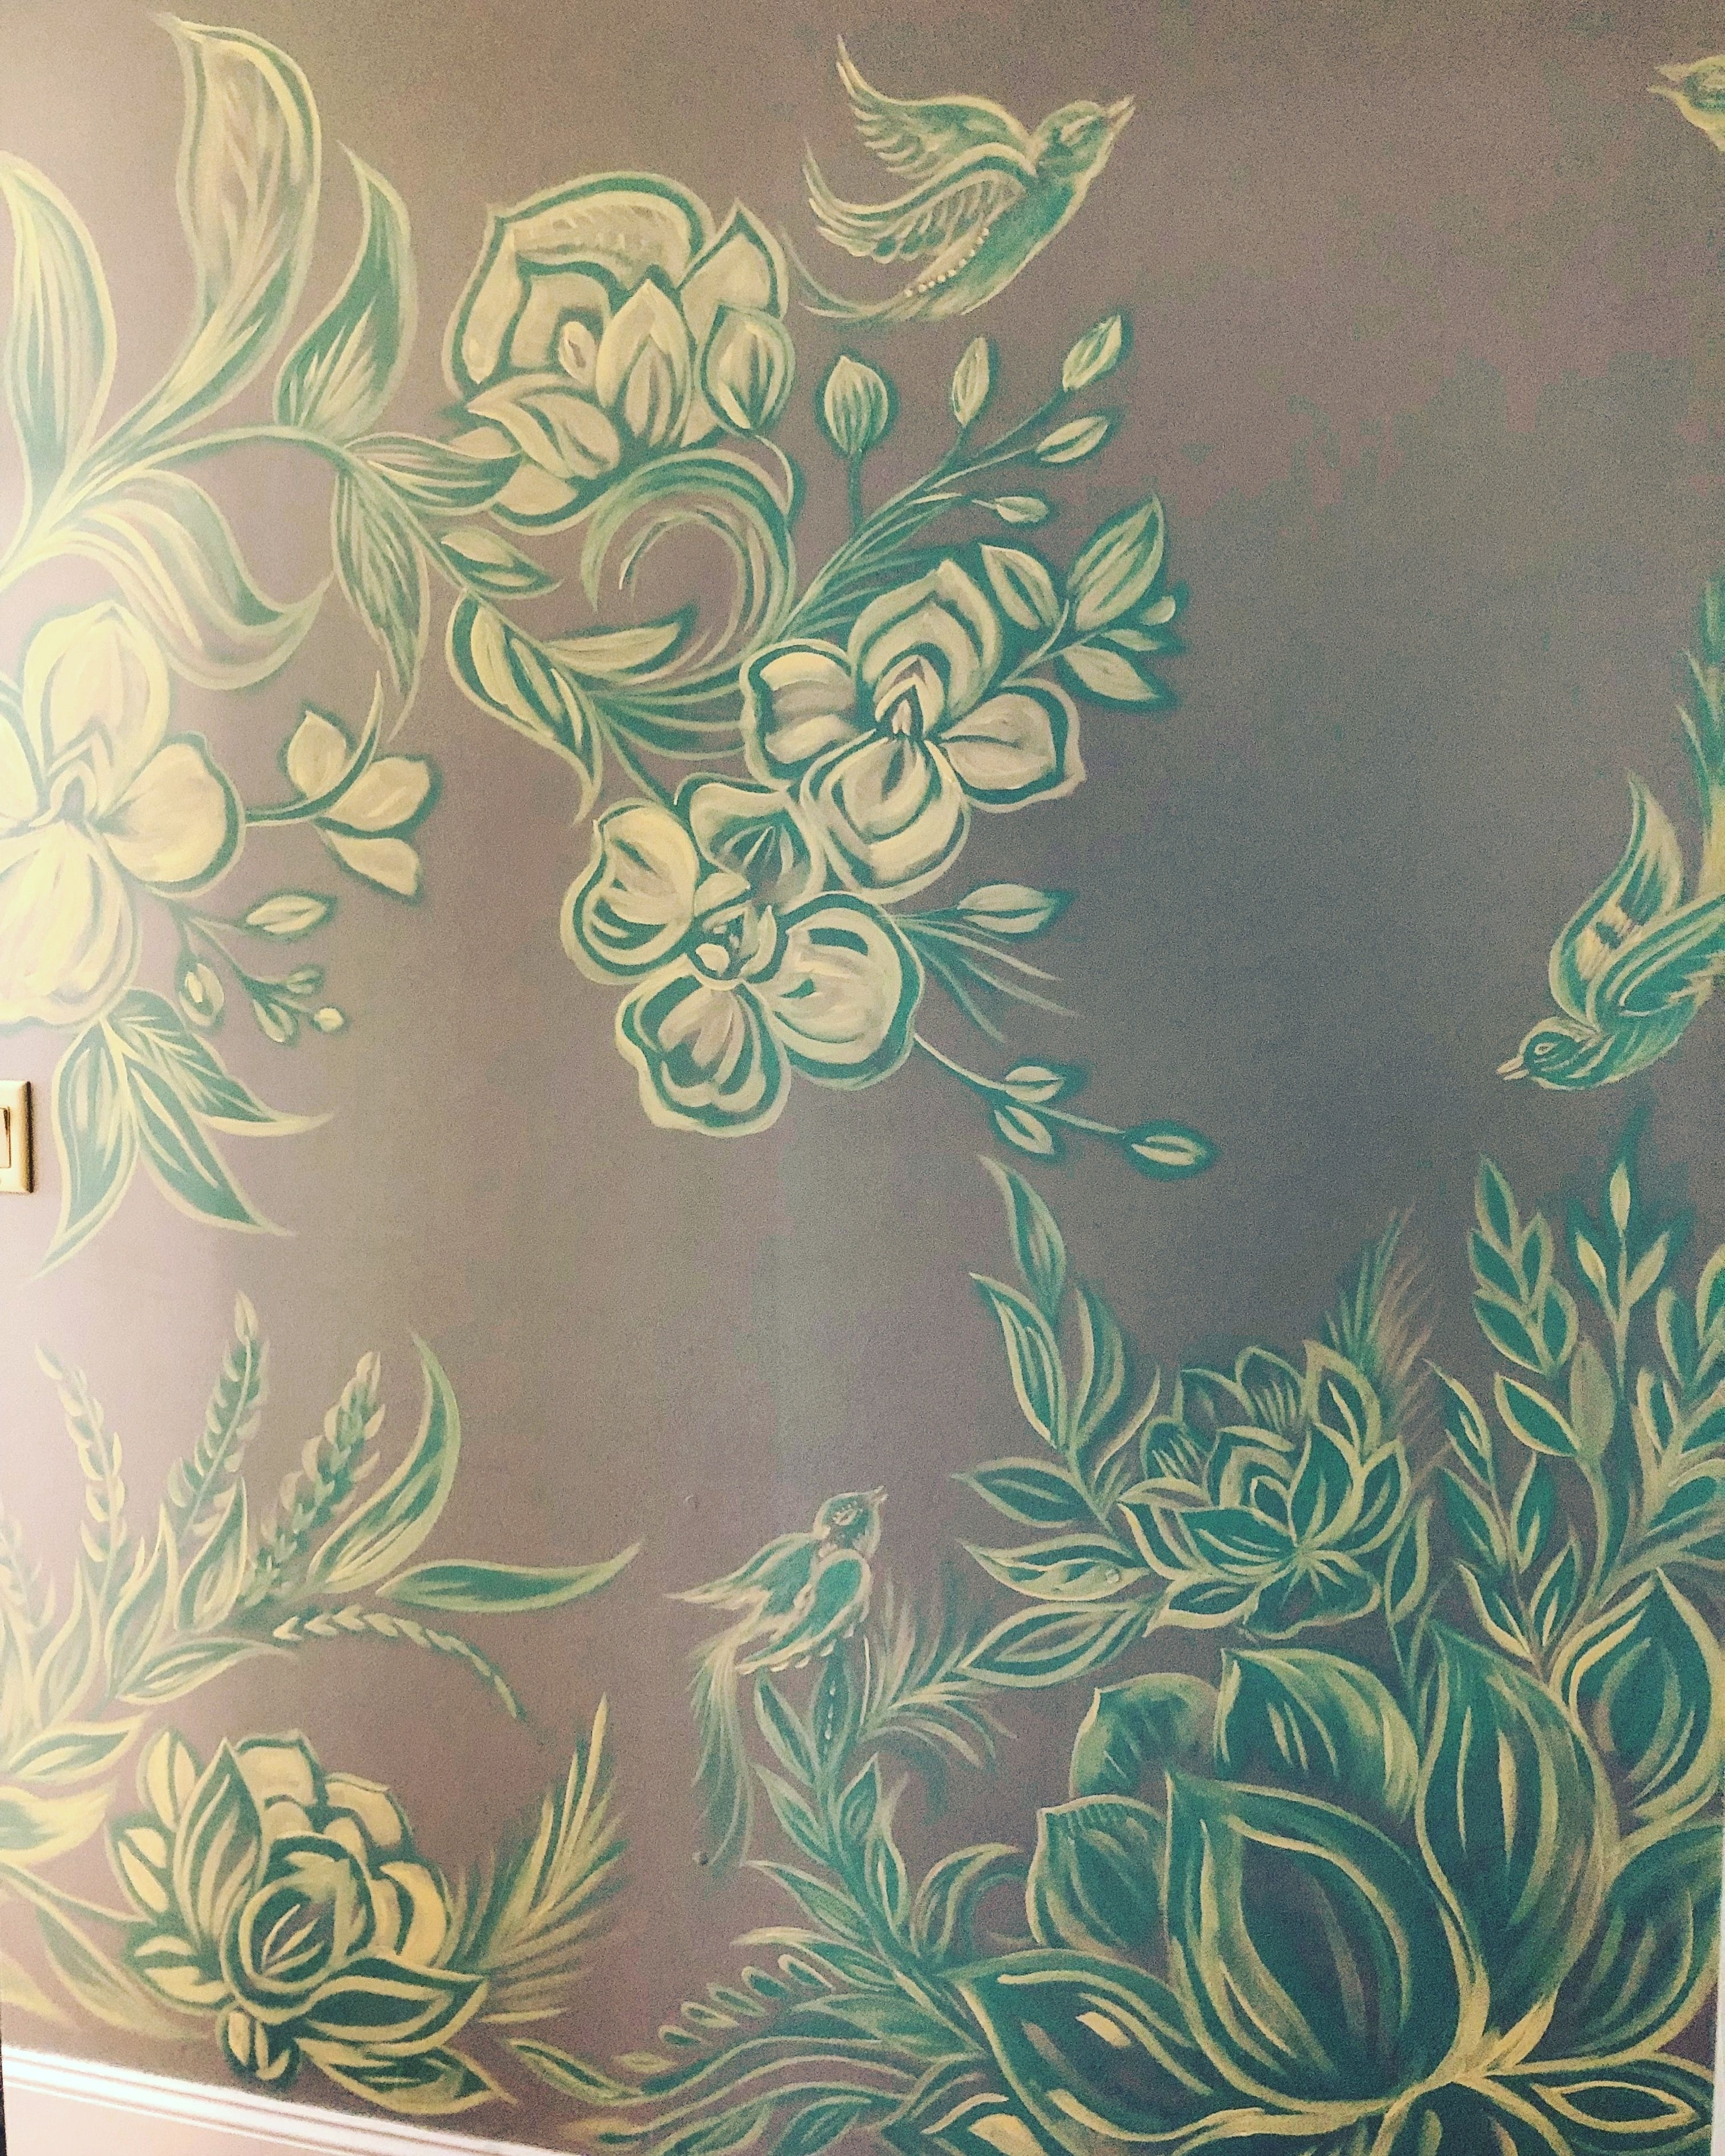 Wallart #mural #floral #decor #interior #lotus #theeyeofhenna Intended For 2018 Henna Wall Art (View 19 of 20)